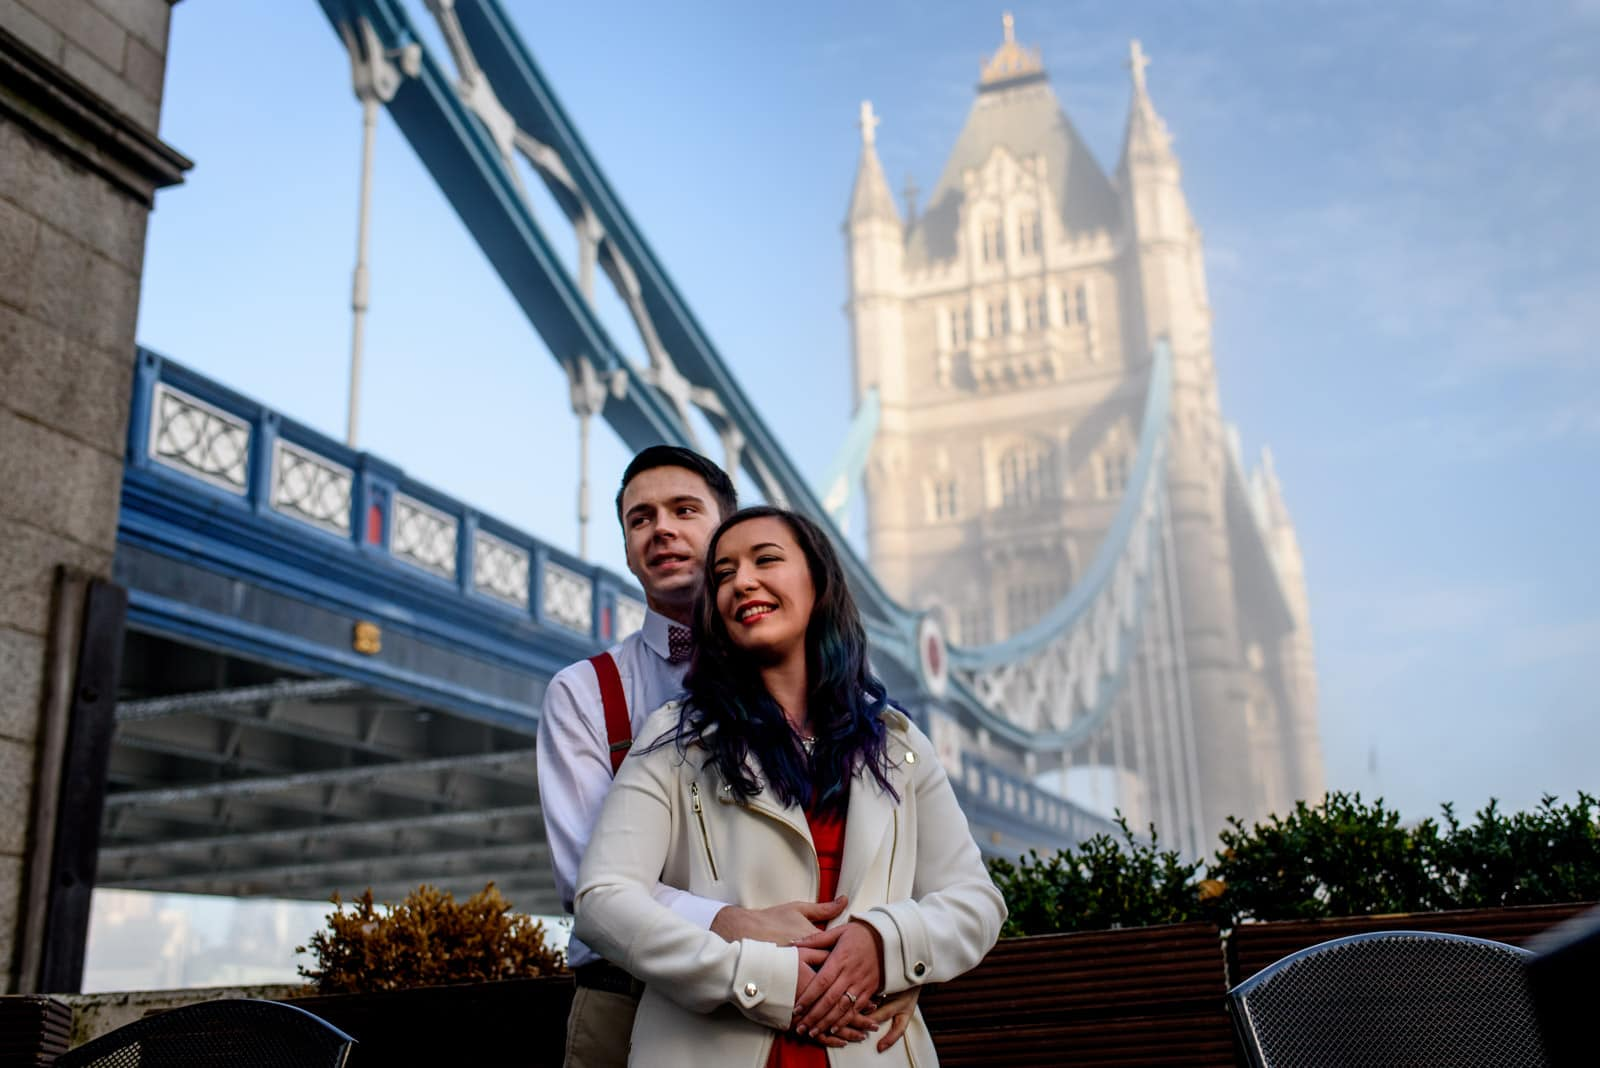 Boy and girl portrait shoot in front of Tower Bridge in London.